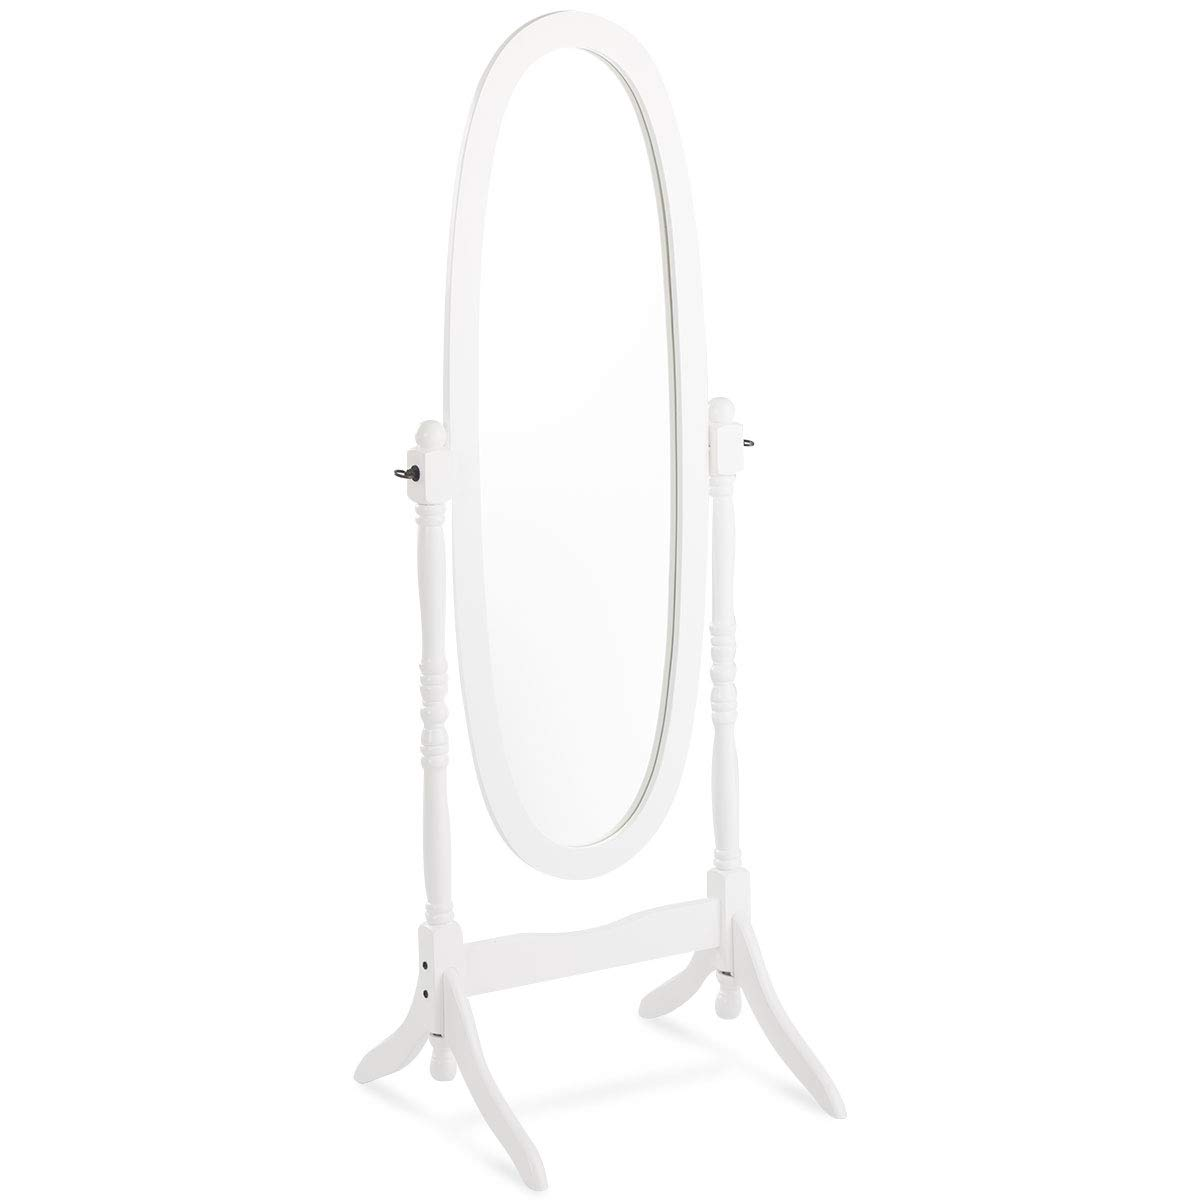 Giantex Bedroom Wooden Floor Mirror Full Length Cheval, 100% Solid Oak Wood Frame Rustic Rotary Swivel Mirror Stand, Free Standing Home Floor Dressing Mirror (White Oval Mirror)